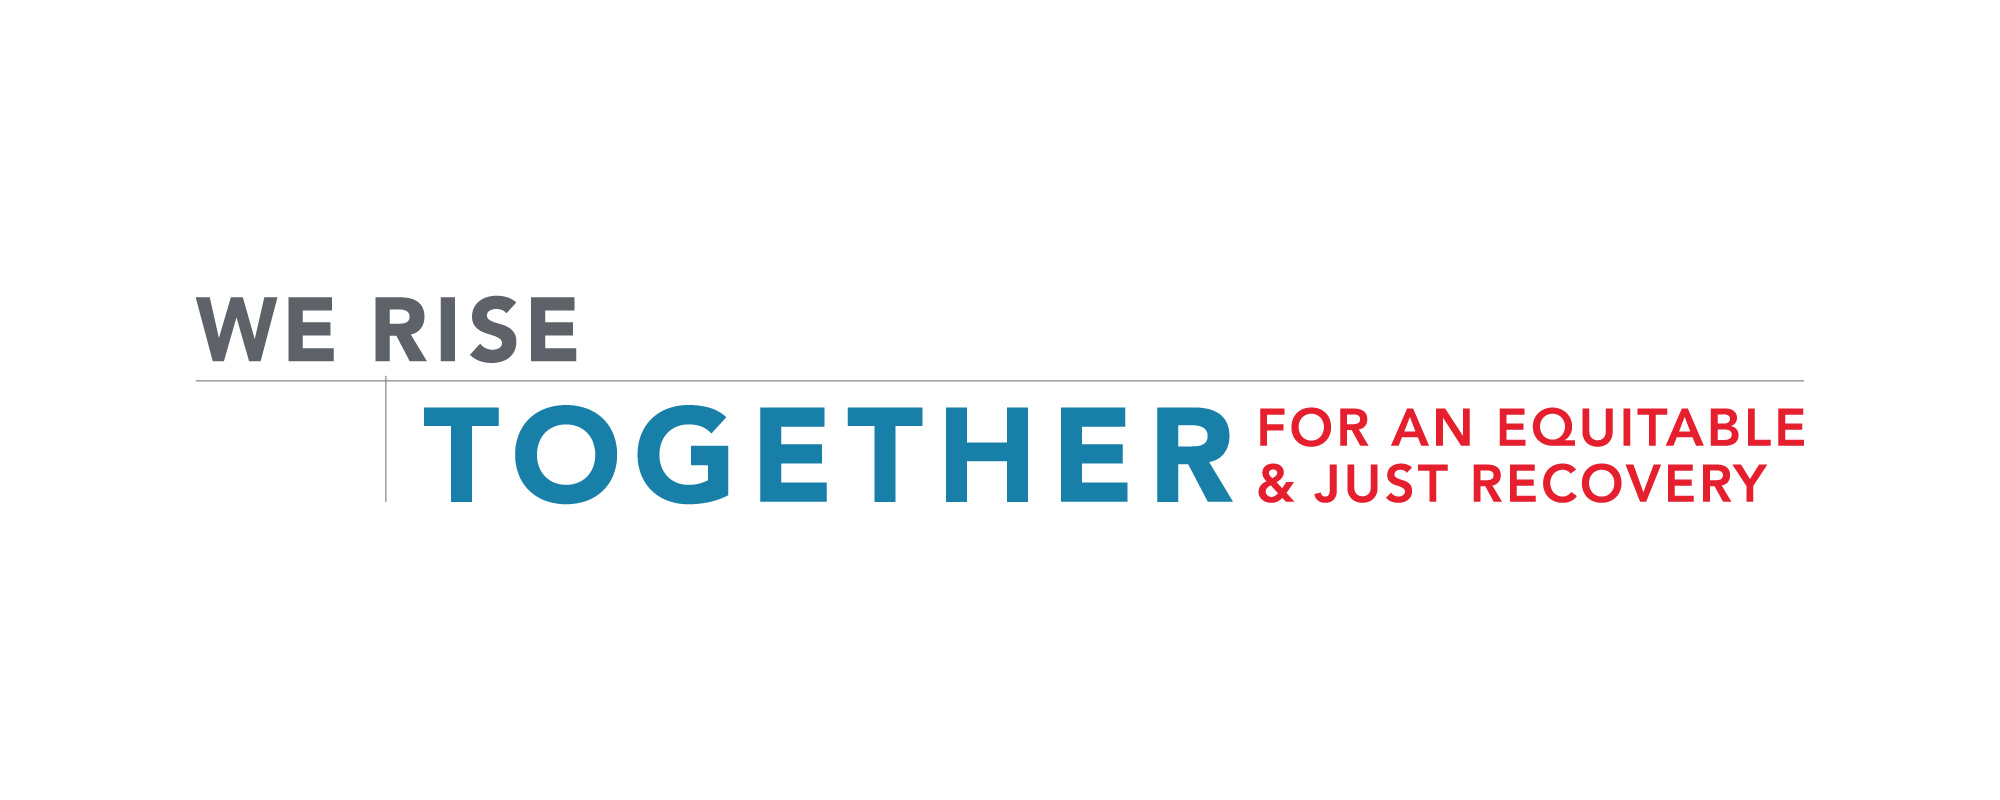 We rise together for an equitable and just recovery.